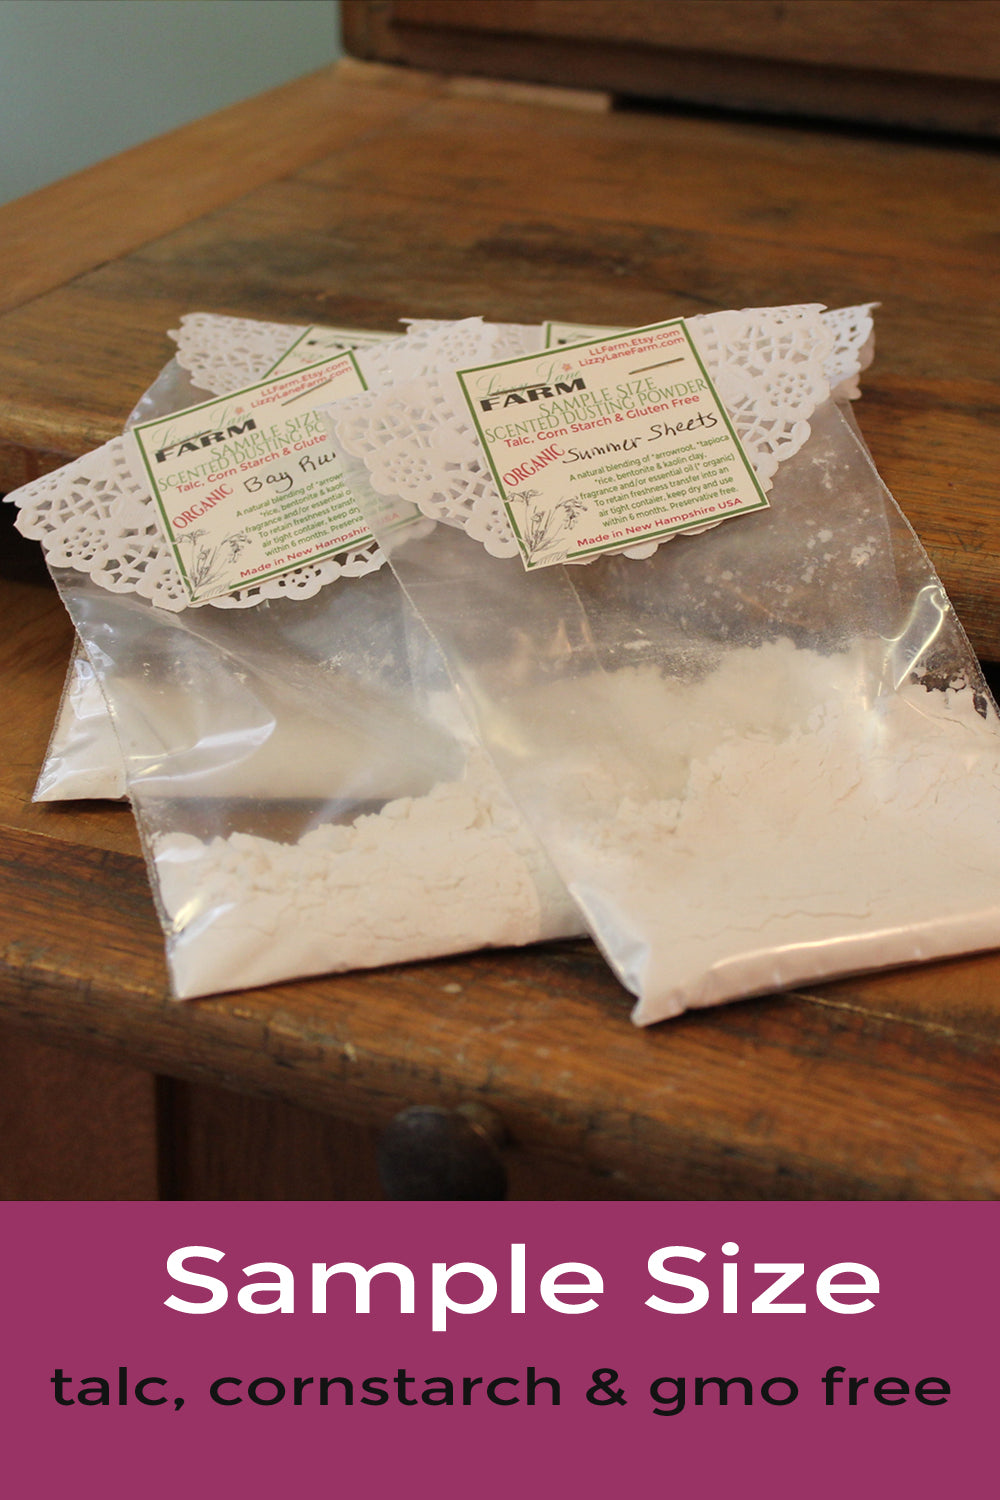 powder samples- organic body powder